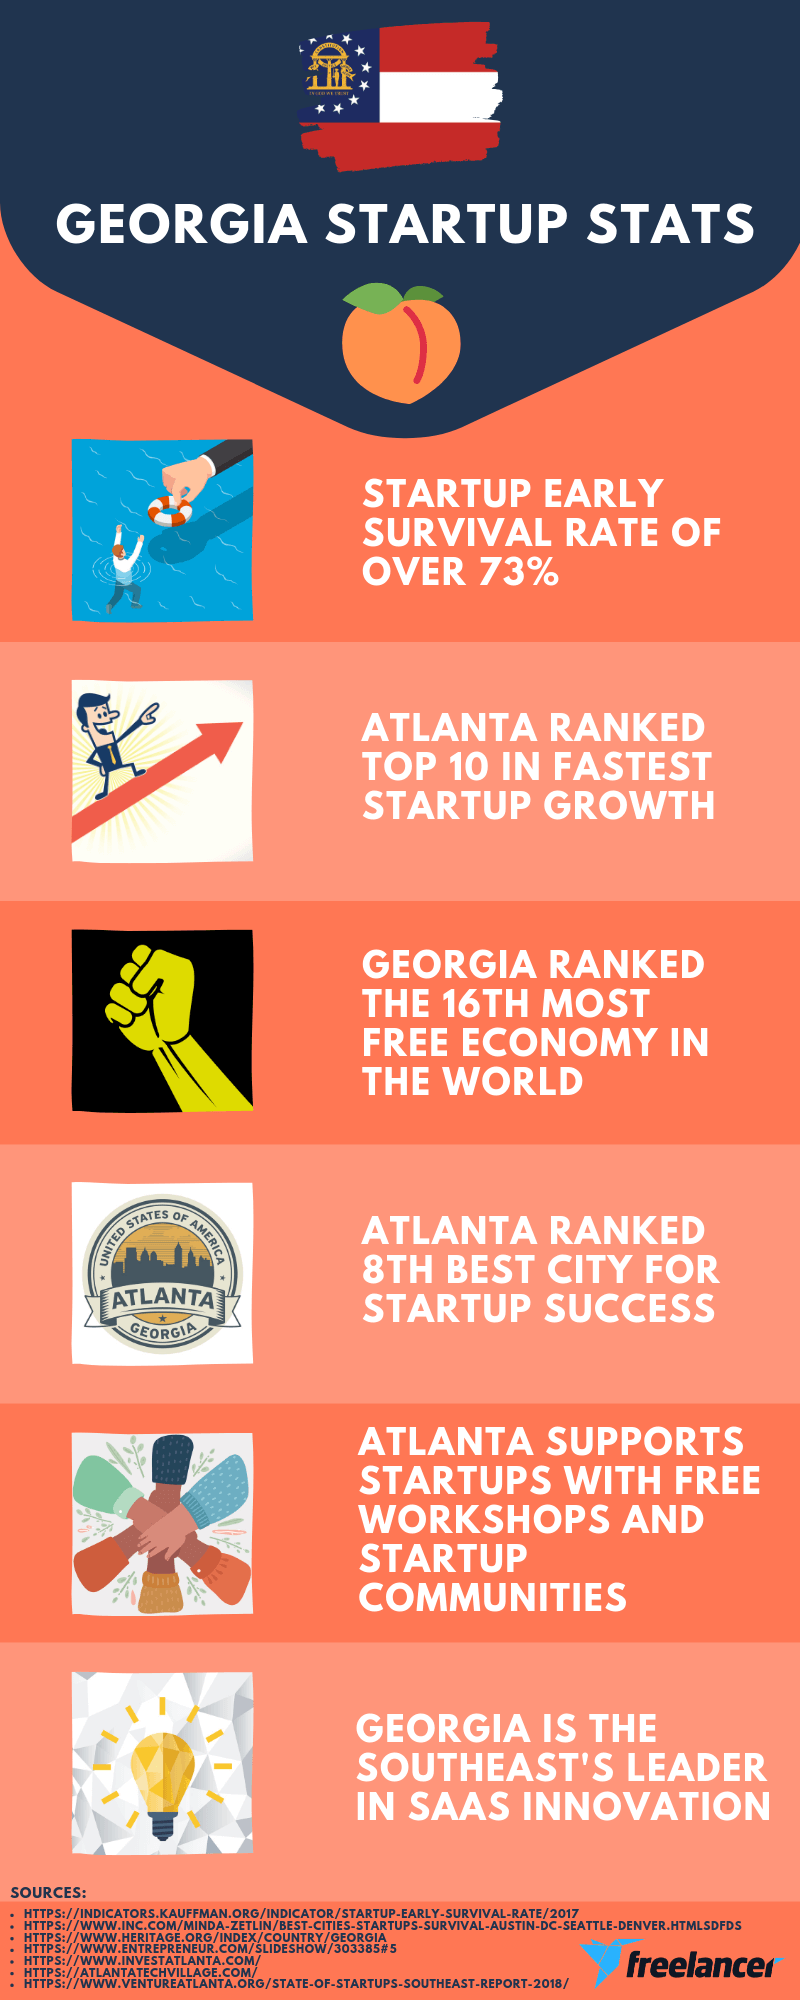 Georgia startup stats infographic